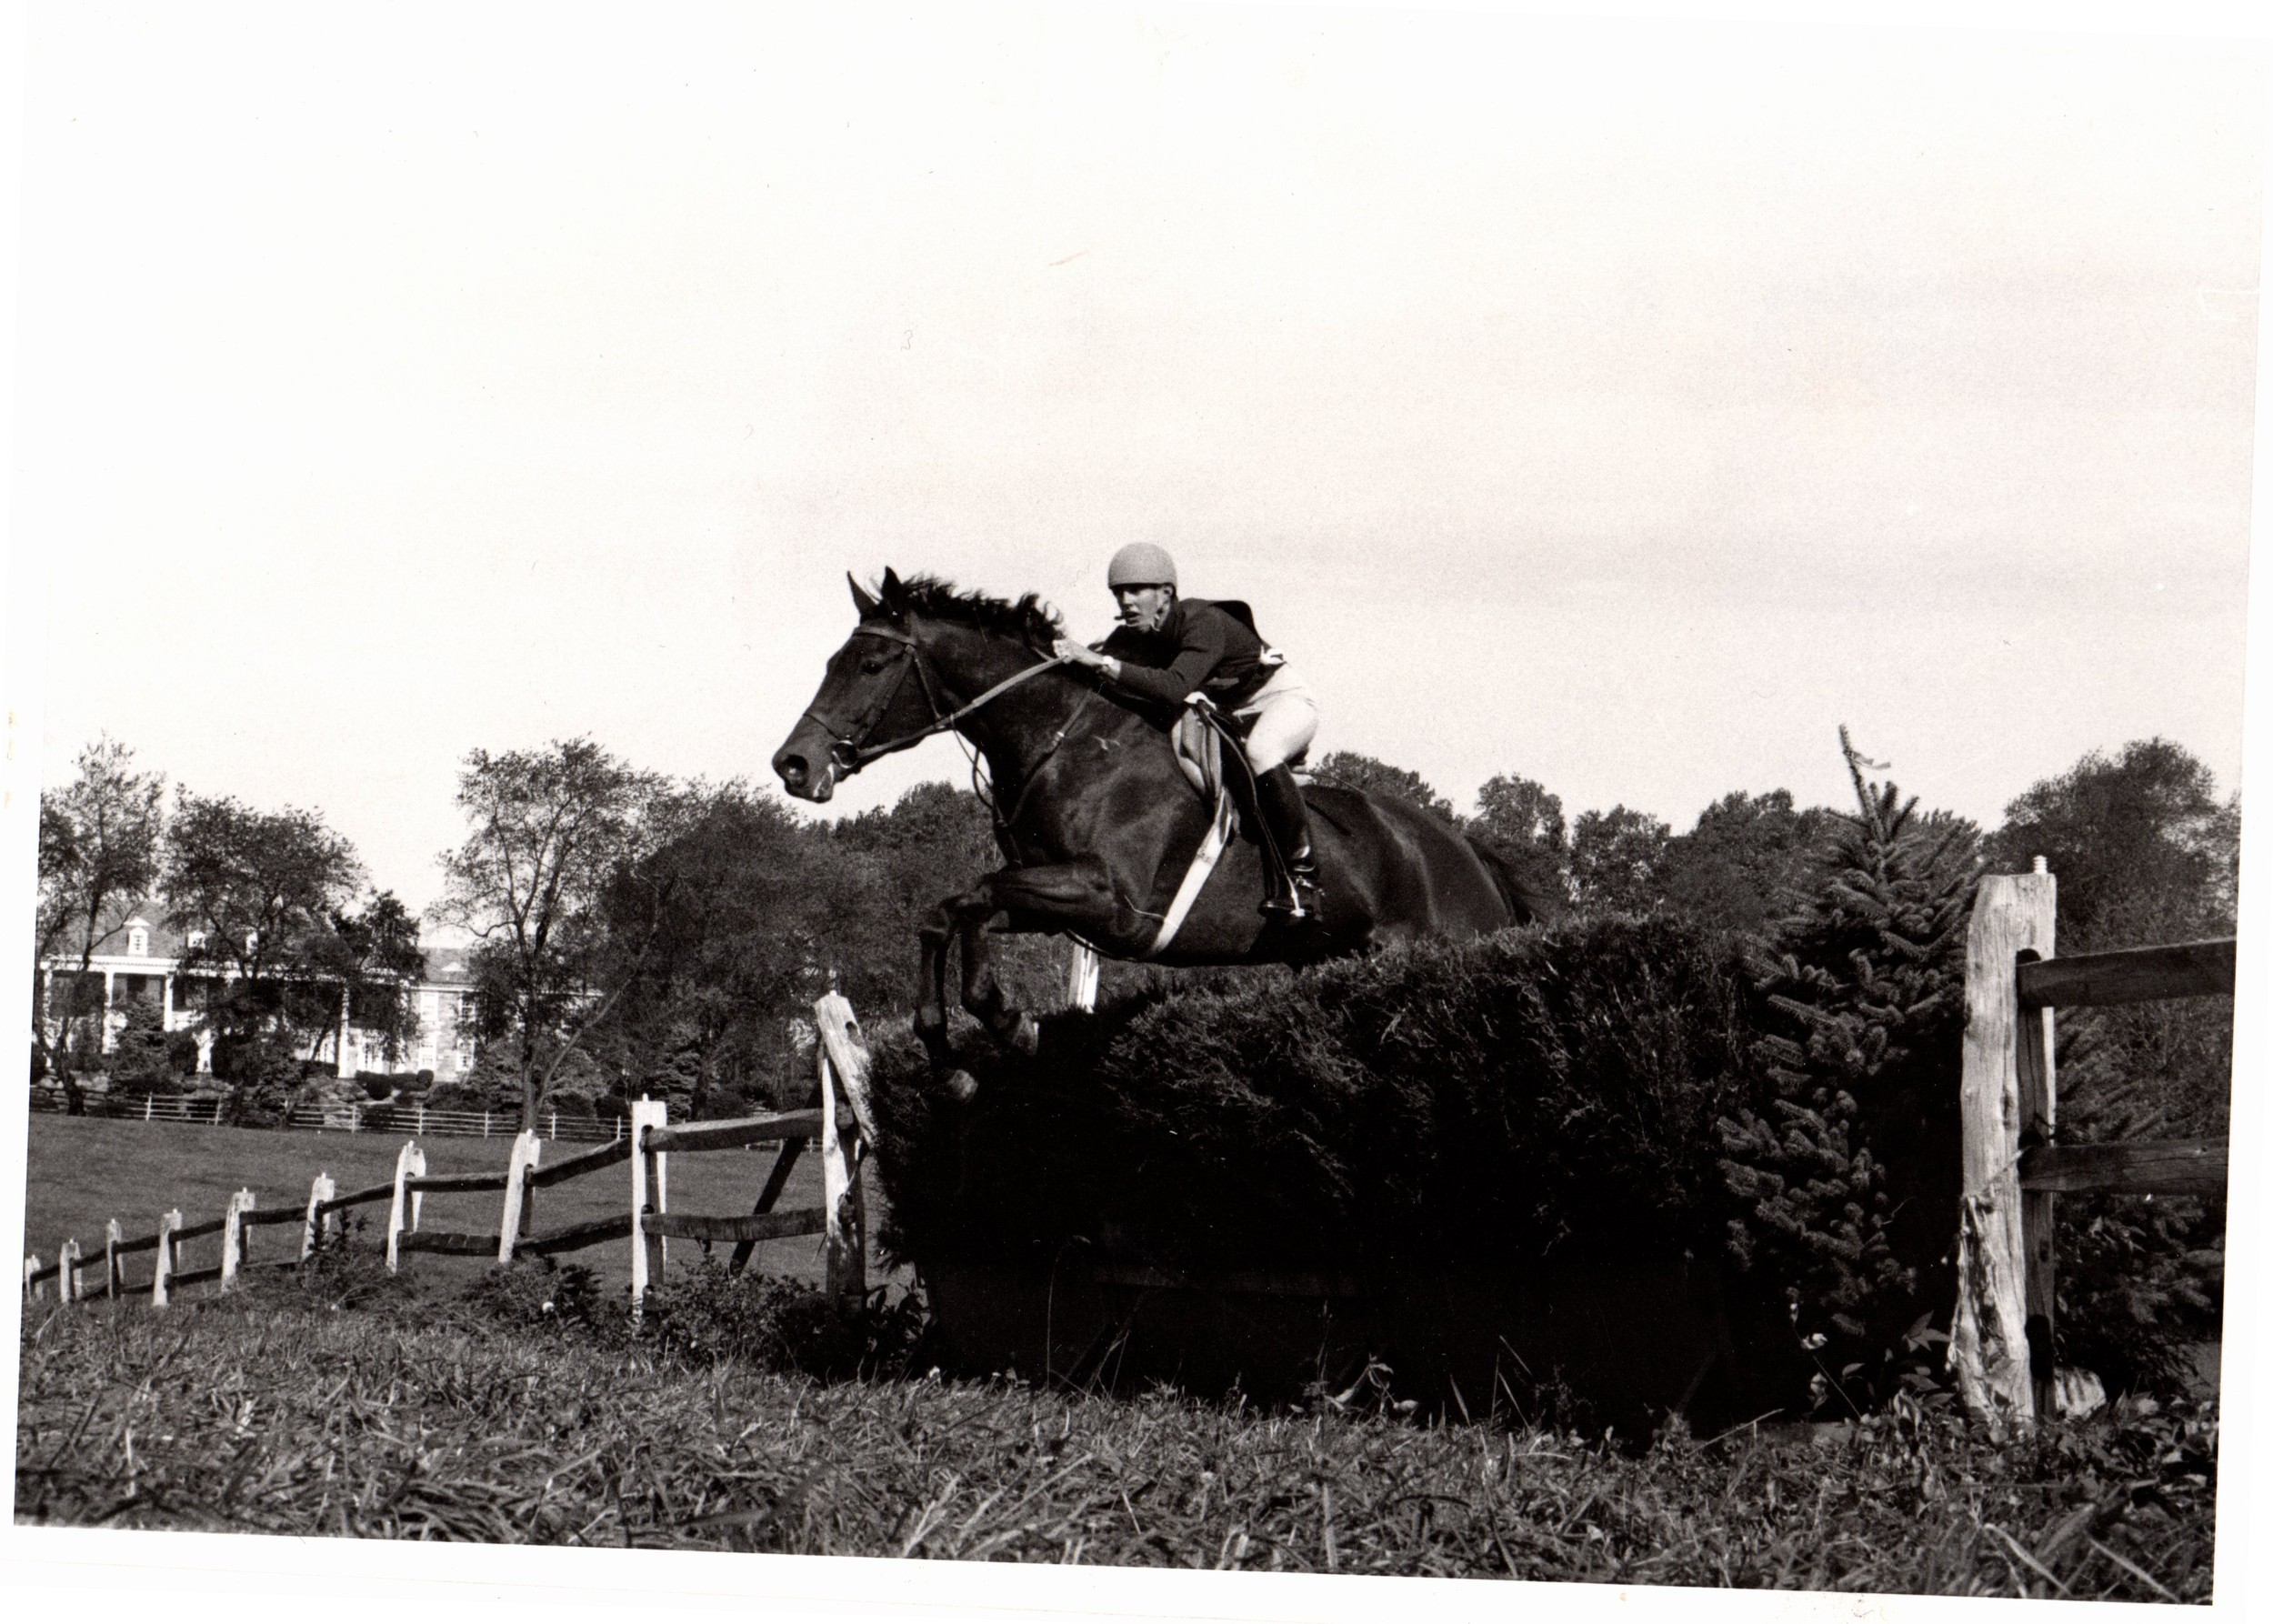 1976 Radnor Three-day event, steeplechase phase, riding our horse Atticus